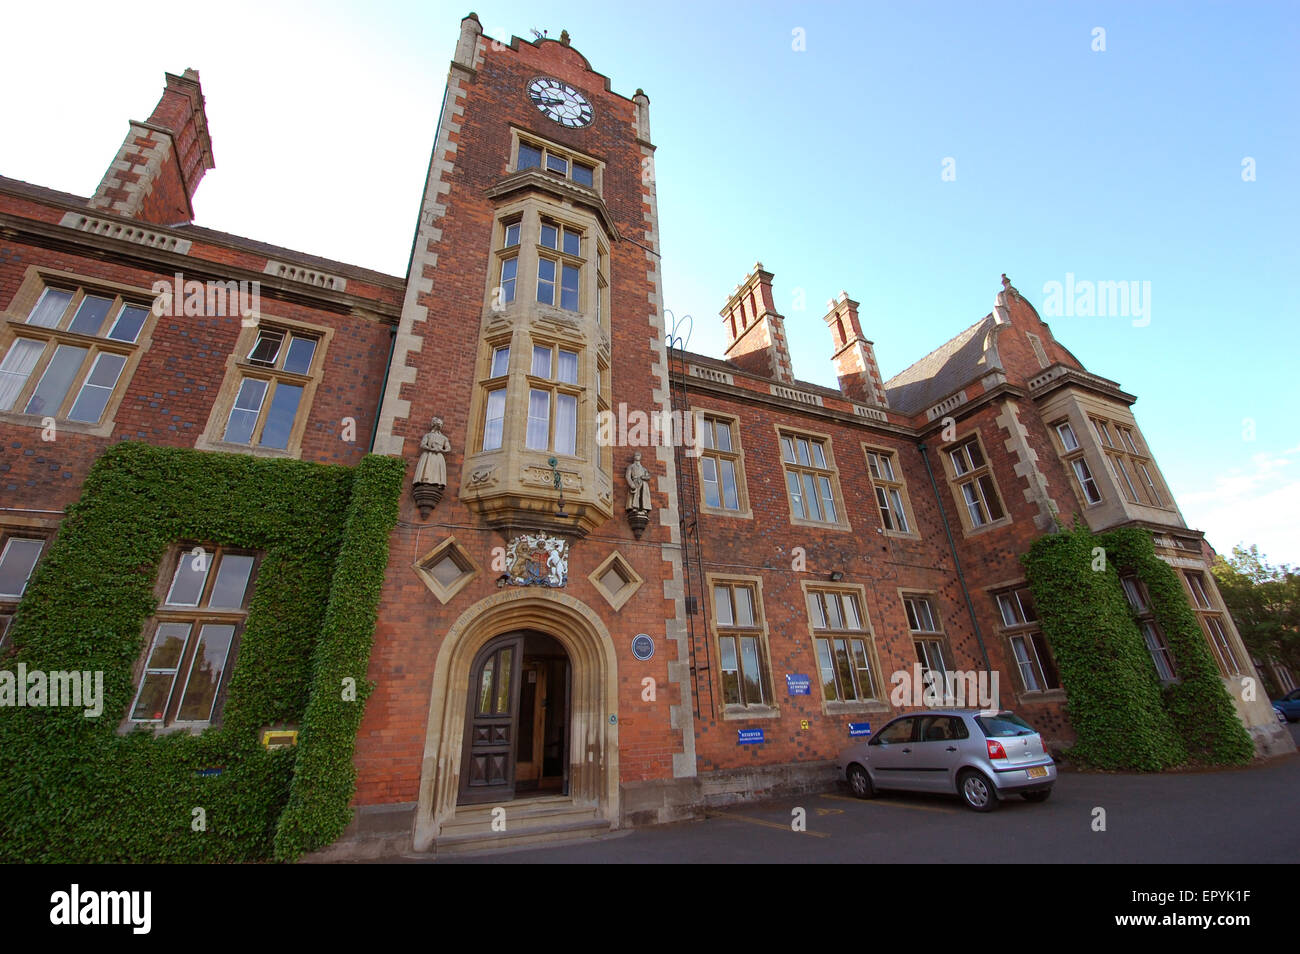 The Royal School, Wolverhampton - Imposing front view of the Victorian building. - Stock Image